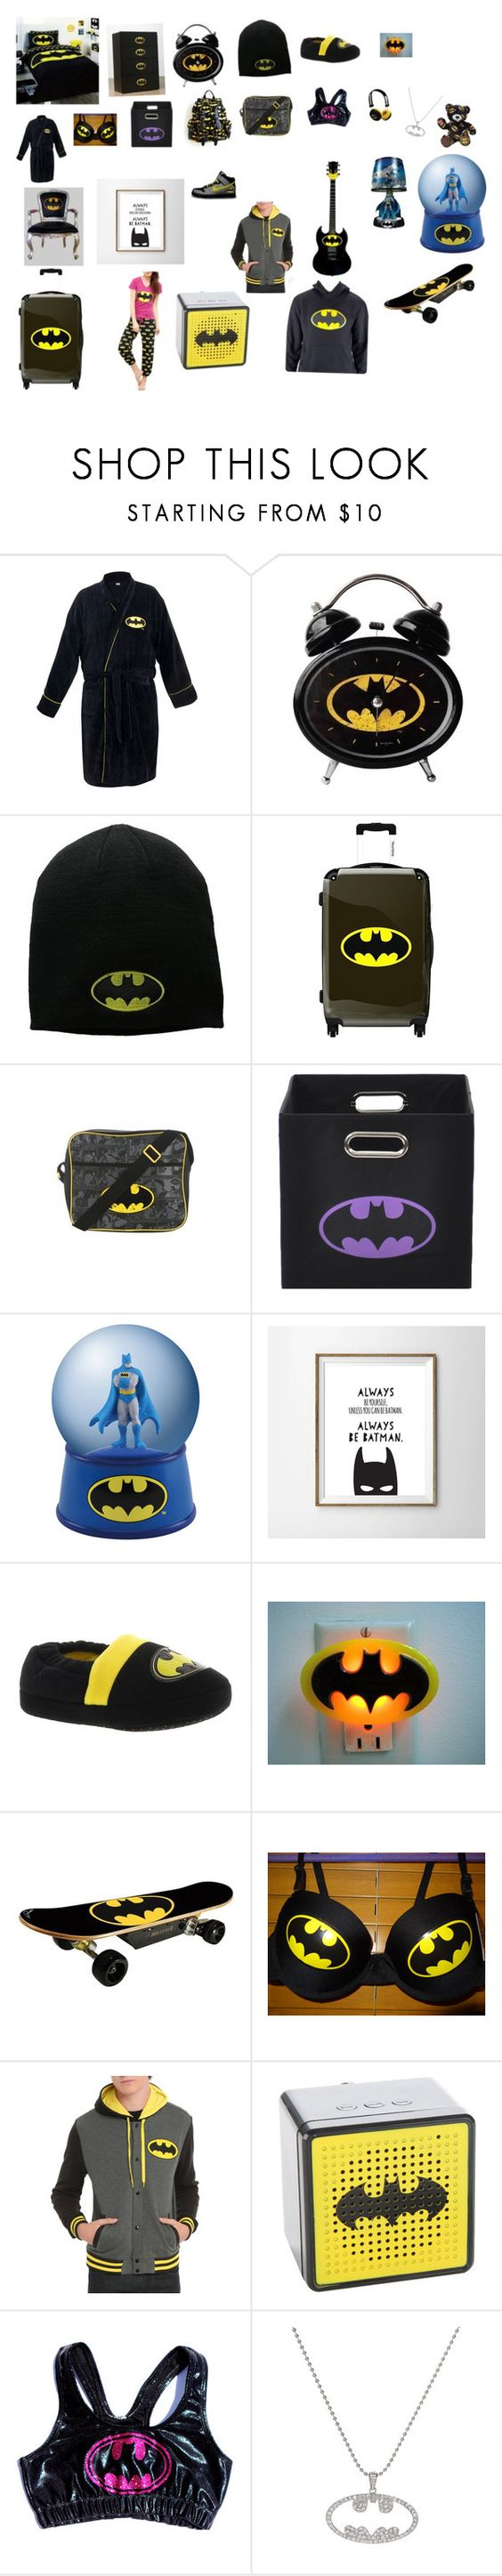 """""""What I want my room to look like and have in my room"""" by kellyconklin ❤ liked on Polyvore featuring IKASE, CO and Pijama"""